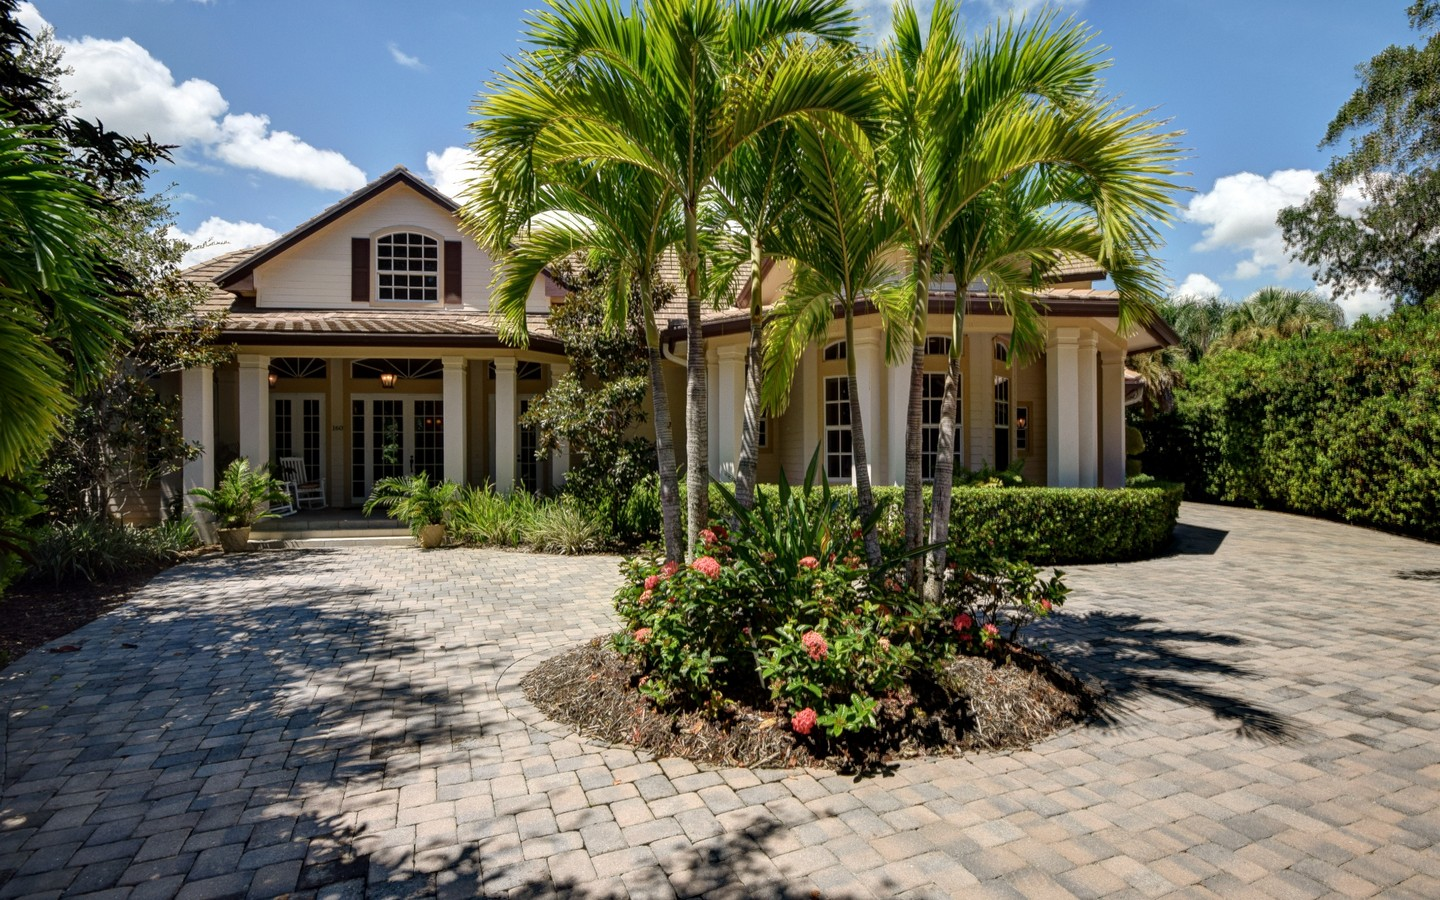 Single Family Home for Sale at Newer, Gorgeous Home in Indian Trails 160 Seaside Trail Indian River Shores, Florida, 32963 United States